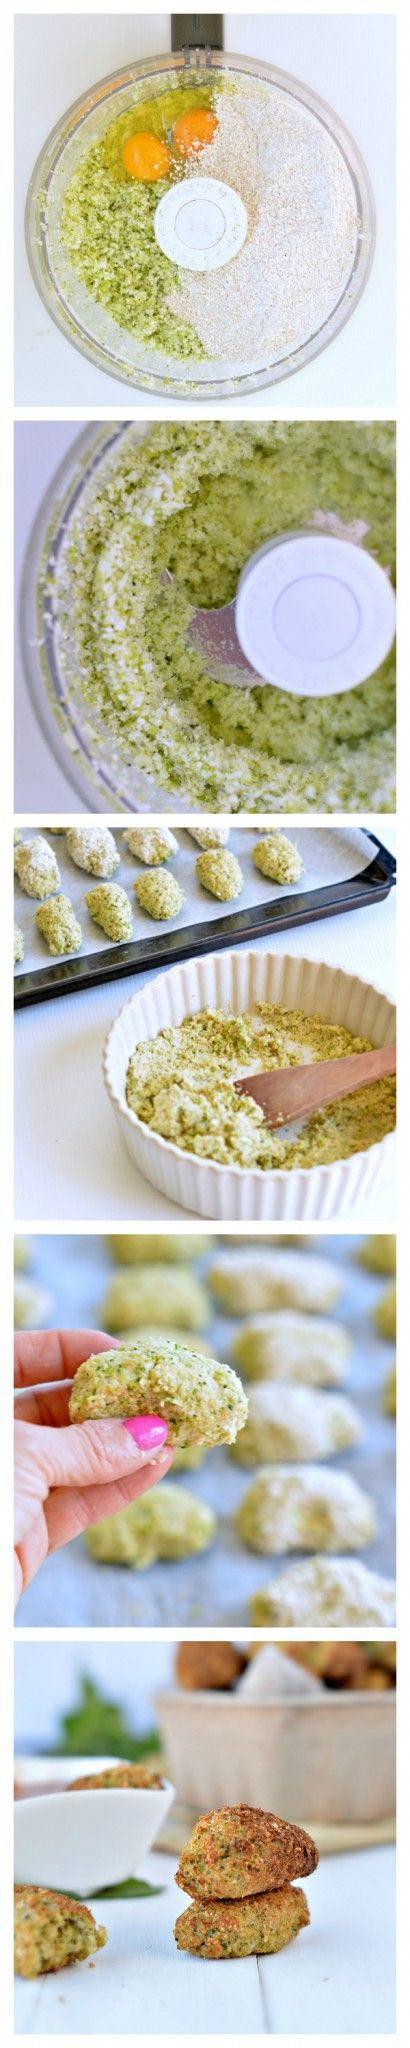 CAULIFLOWER NUGGETS:3 cup + 1/2 cup of grated raw cauliflower/broccoli -I used 430 g raw cauliflower, florets + 180 g raw broccoli florets 1 small brown onion, peeled, diced 4 eggs, size 6 (or 4 chia eggs if vegan) 1 tablespoon dried herbs - I used a mix of mint and basil 1 1/2 cup (200g)Gluten Fre Oat Flour  or Almond Flour if paleo  Salt and pepper